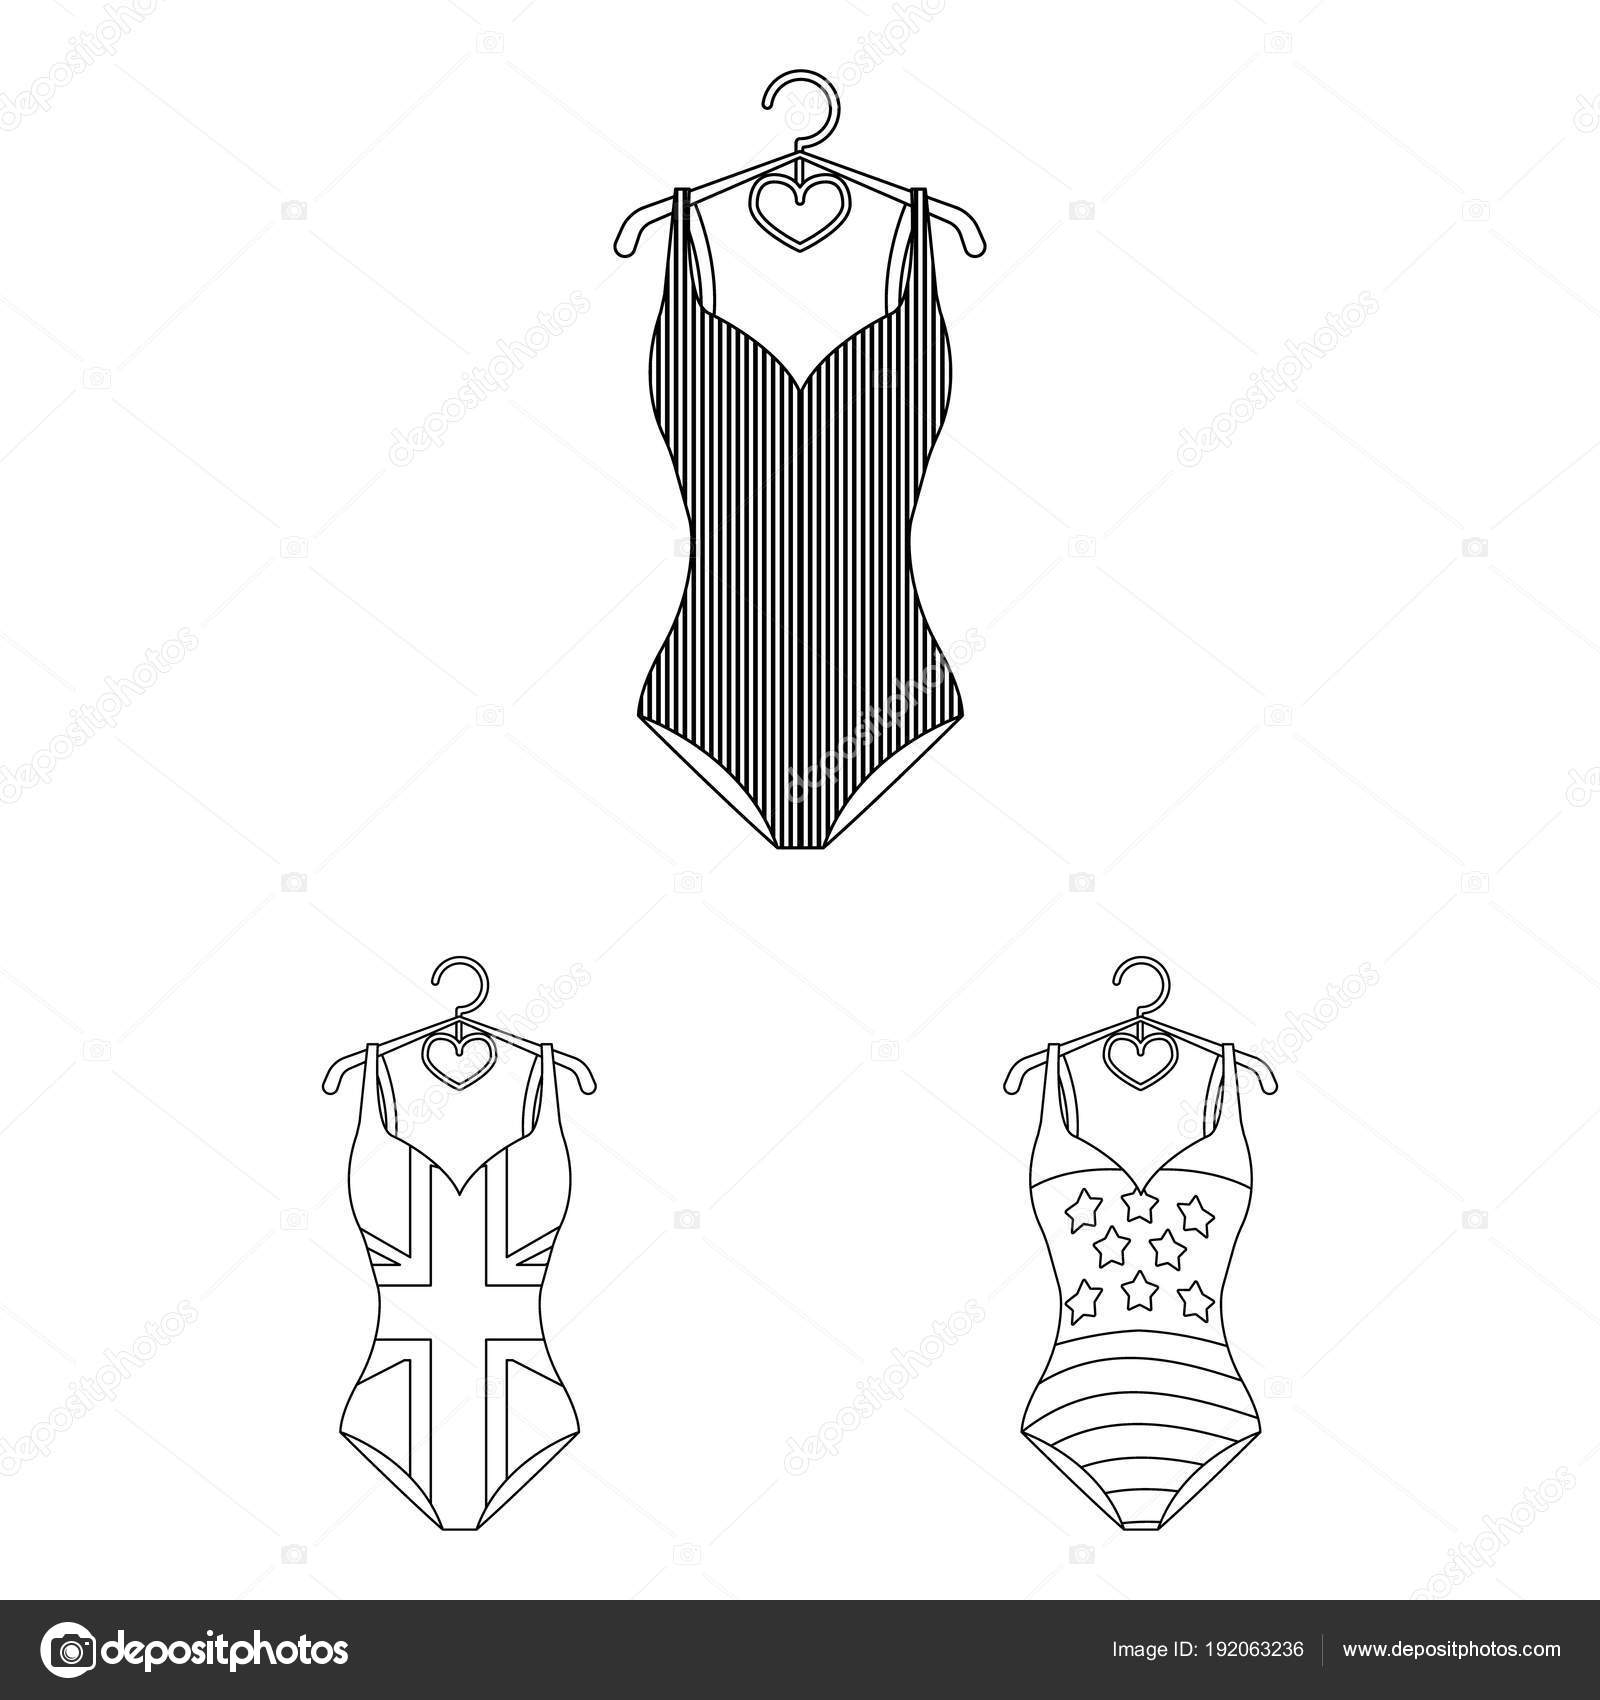 https://st3.depositphotos.com/3557671/19206/v/1600/depositphotos_192063236-stock-illustration-different-types-of-swimsuits-outline.jpg